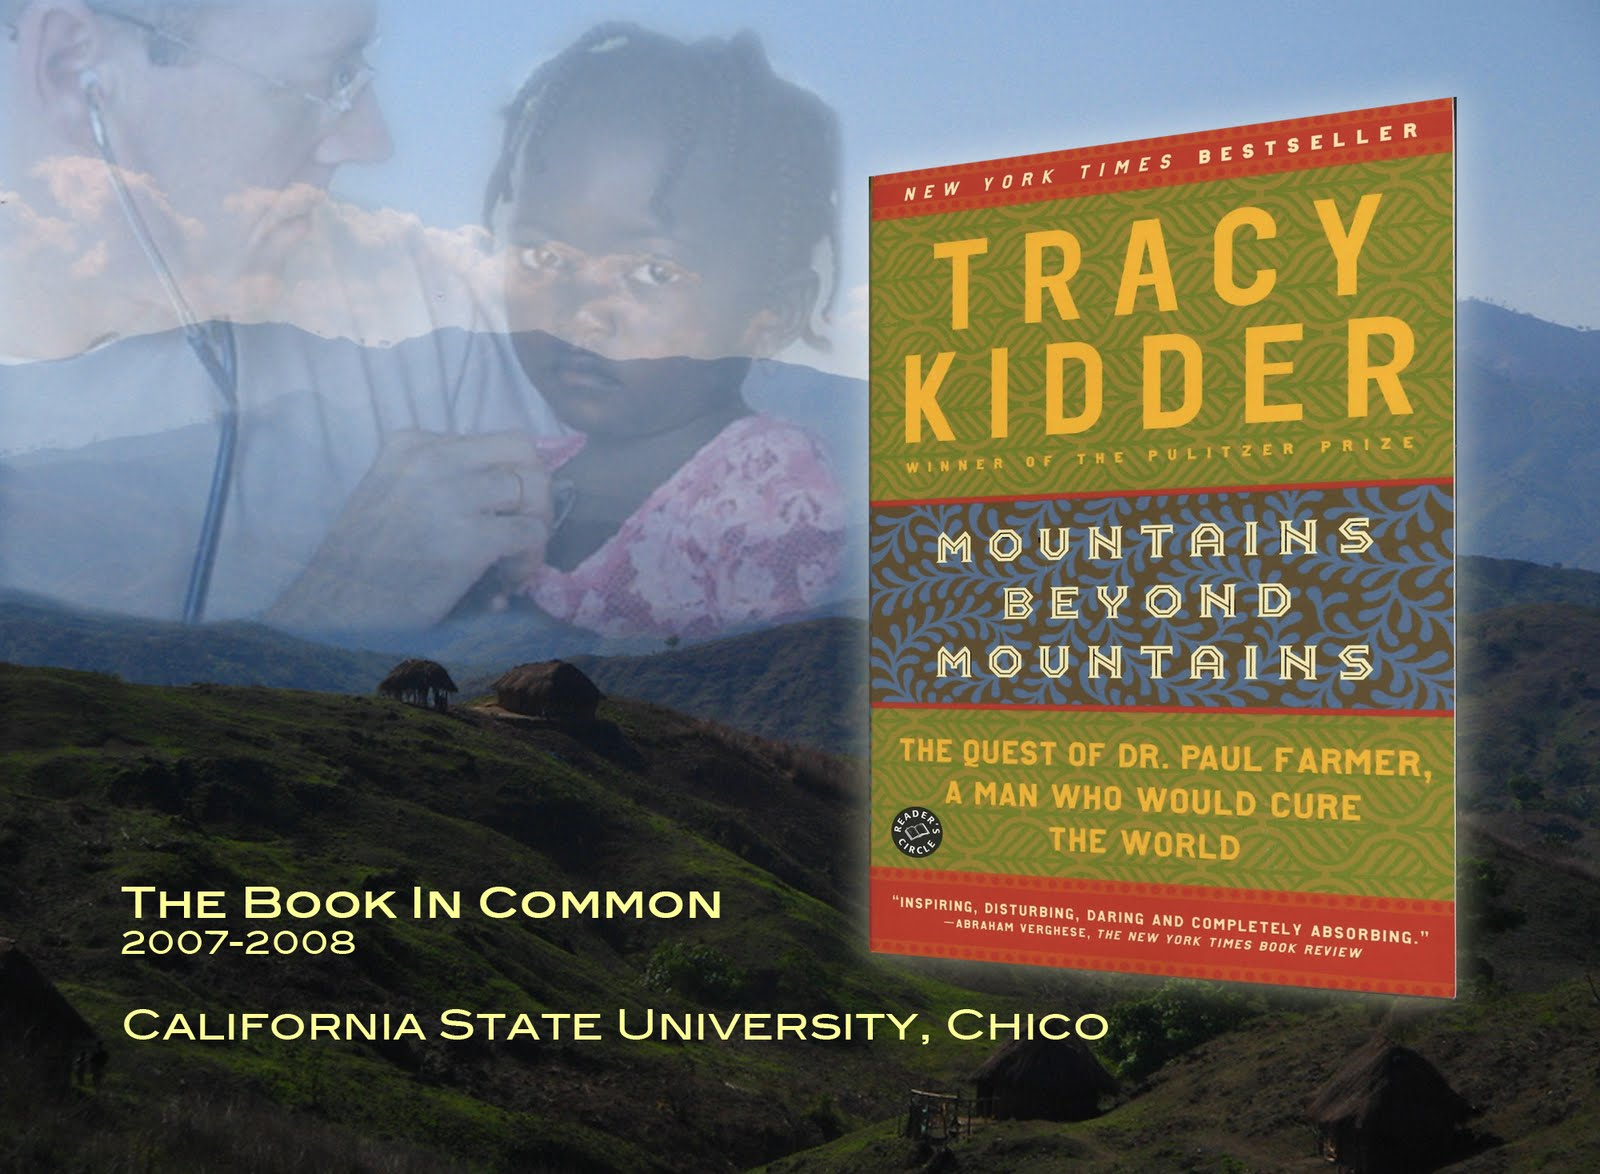 paul farmers travels to haiti in mountains beyond mountains by tracy kidder Books on tape genre: biography & autobiography - medical (incl patients) tracy kidder is a winner of the pulitzer prize and the author of the bestsellers the.